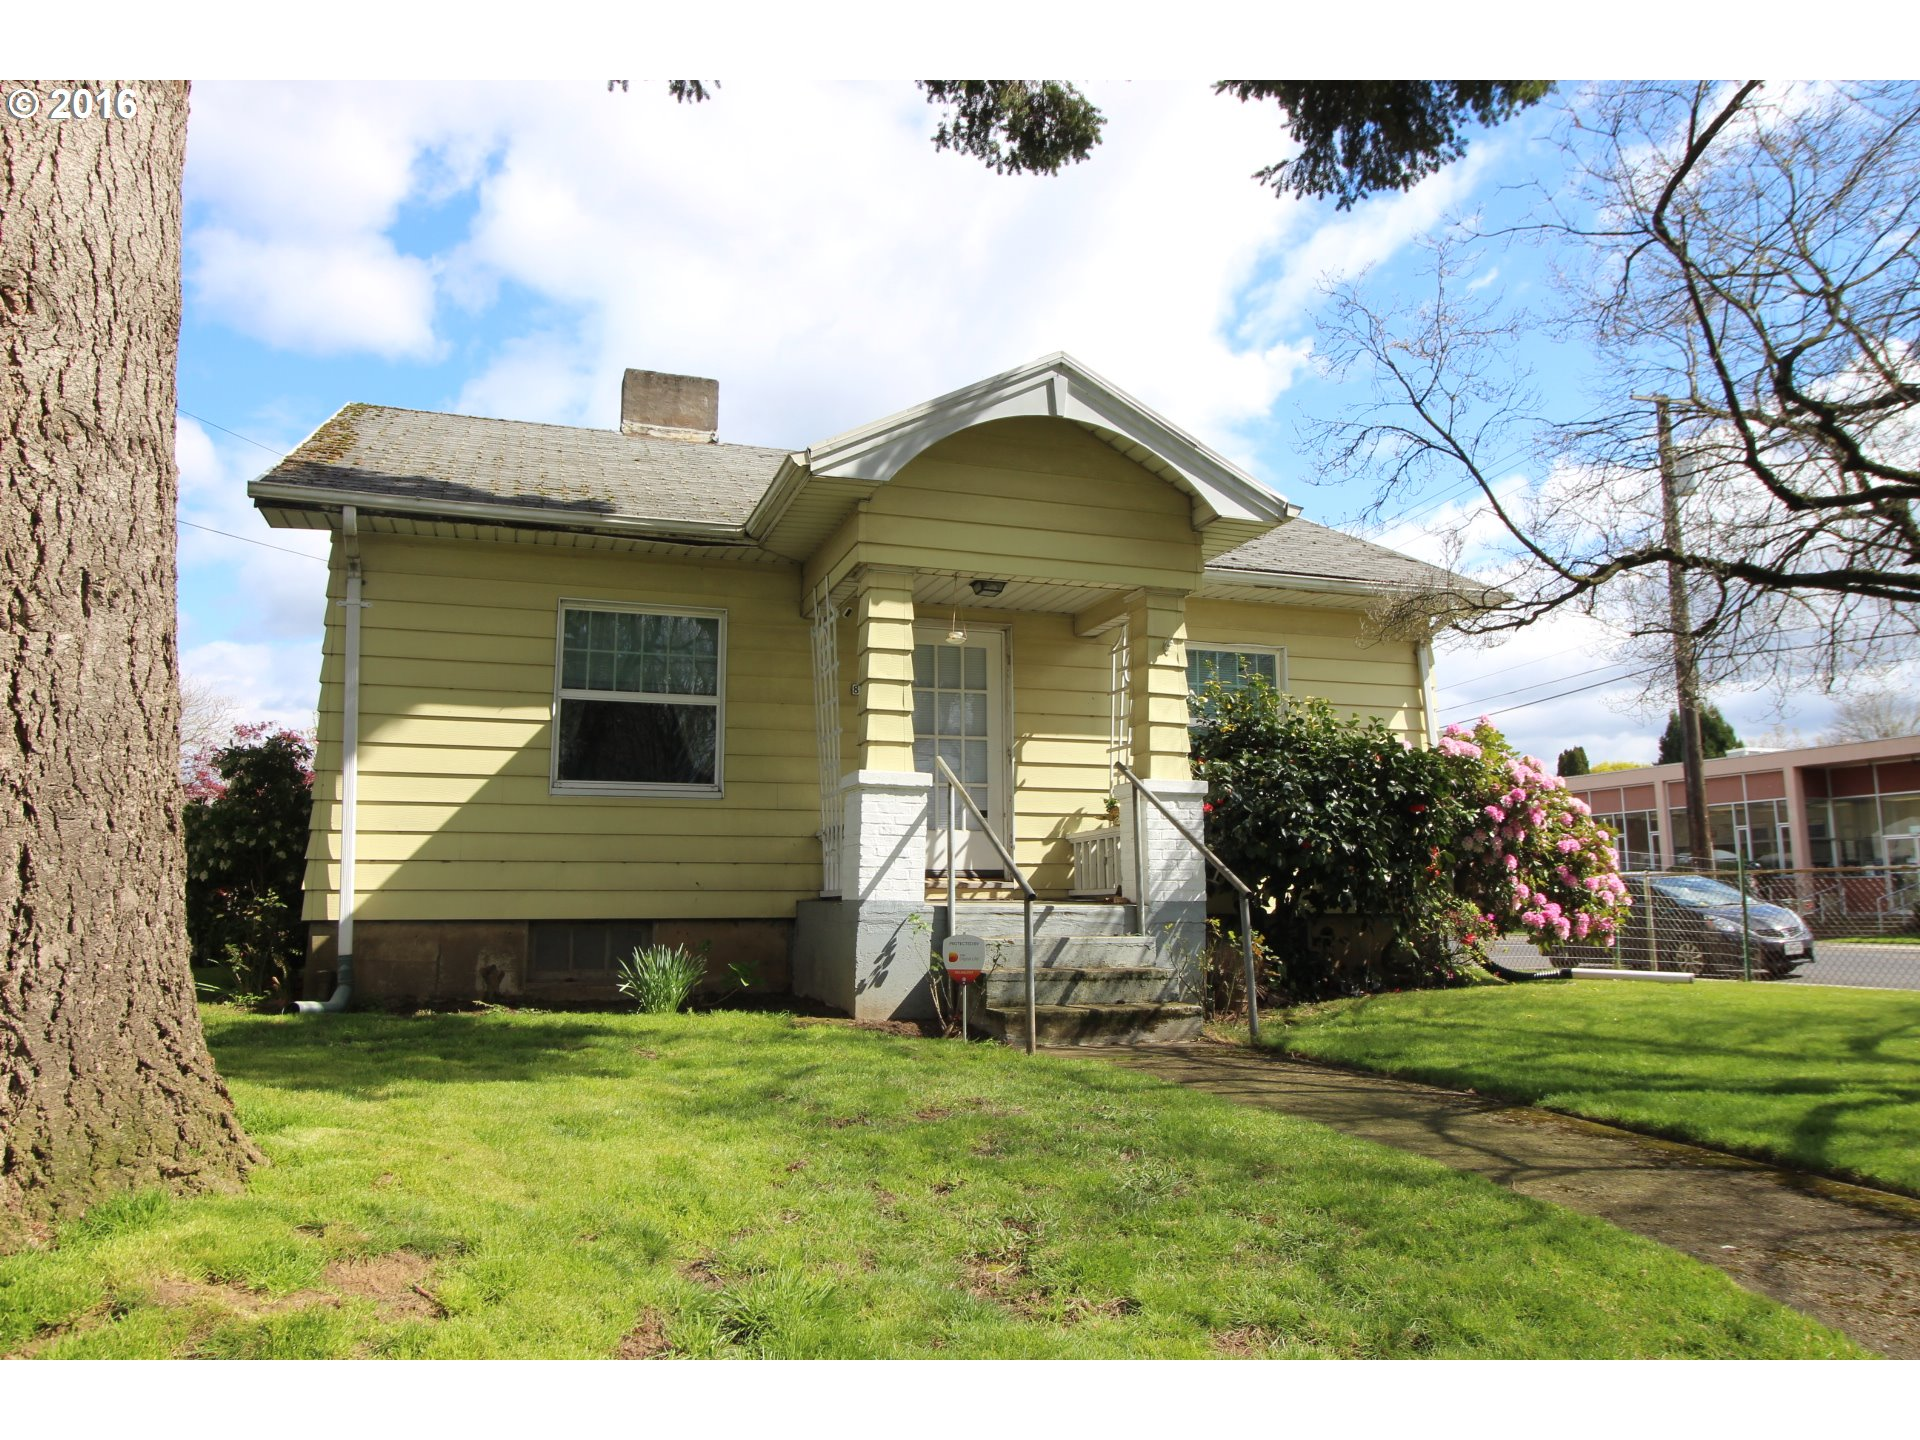 8210 N BRANDON AVE, Portland, OR 97217